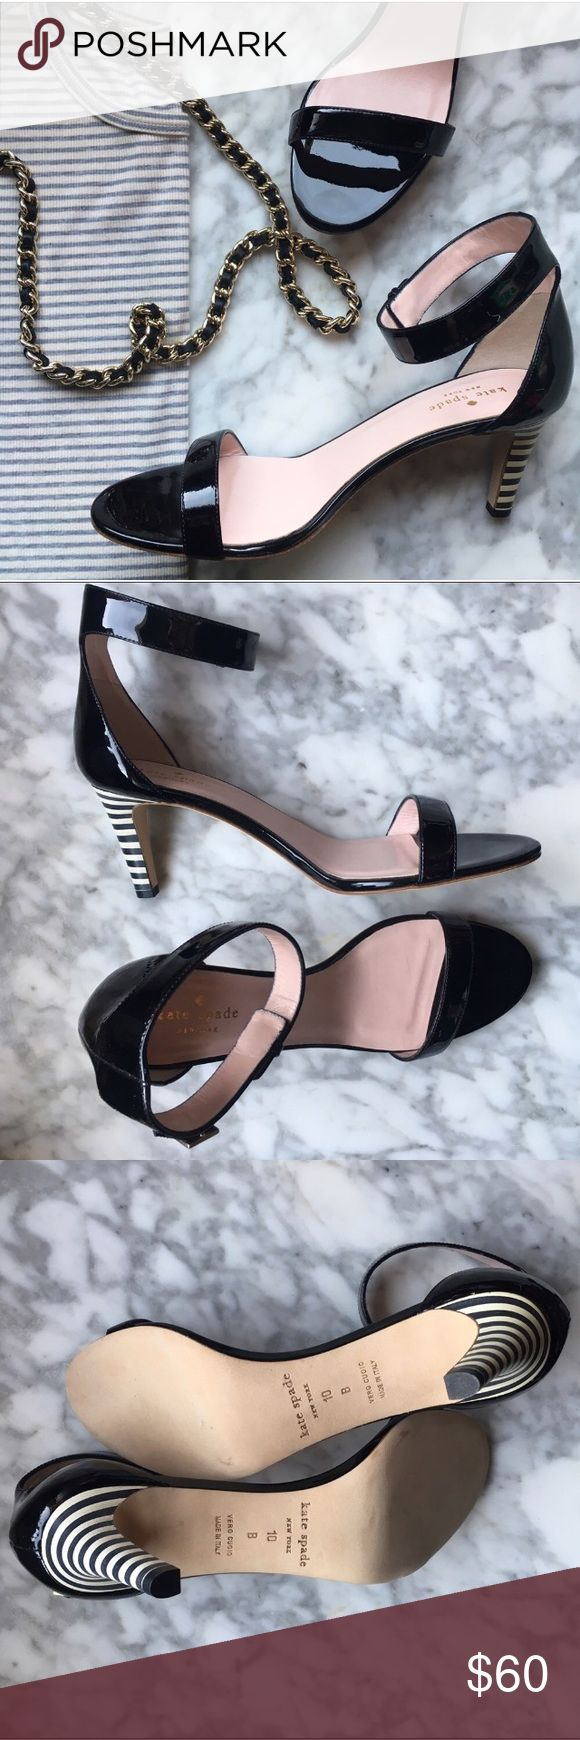 Kate Spade•Elsa Striped Heel Sandal Absolutely darling for spring (and the rest of the year!) Includes dust bag & box. 💕 kate spade Shoes Heels